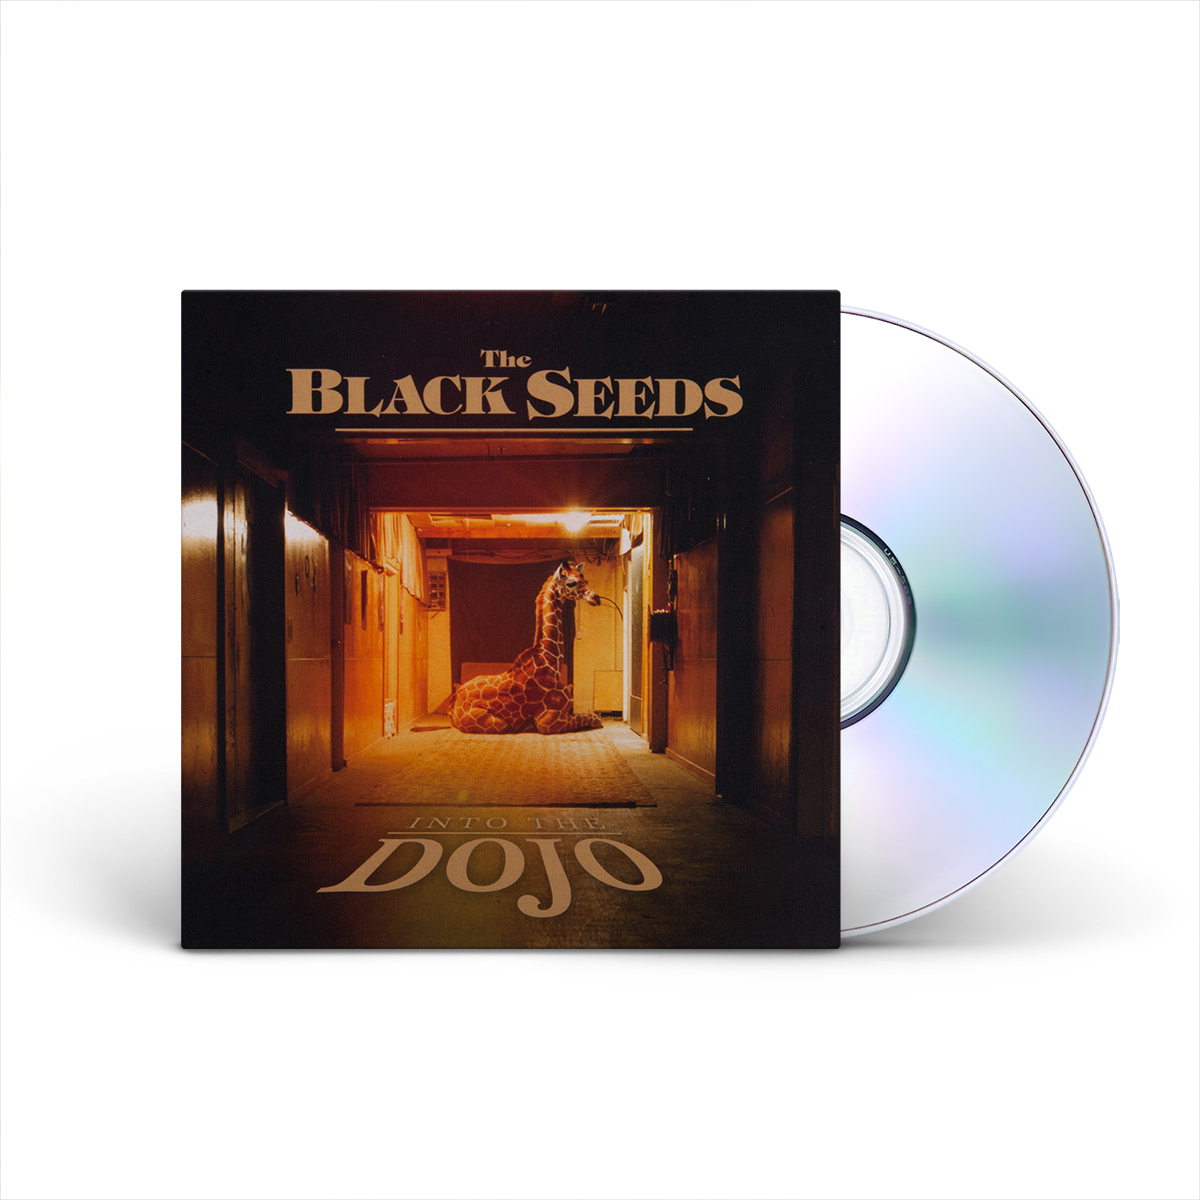 The Black Seeds - Into the Dojo CD